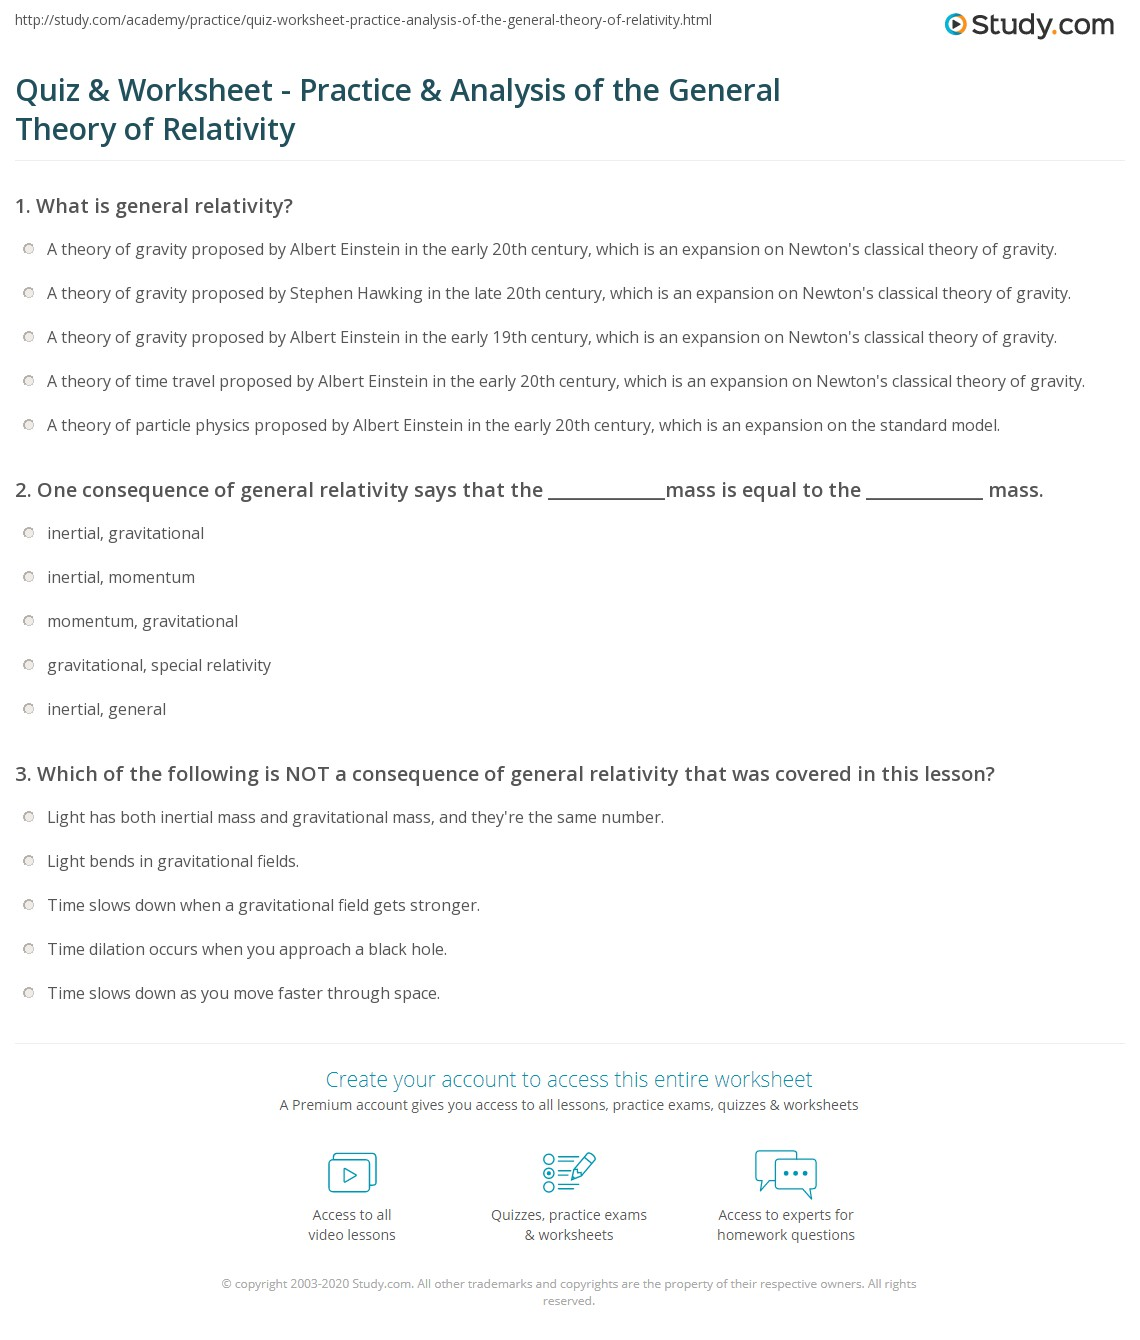 ... General Theory of Relativity: Analysis & Practice Problems Worksheet